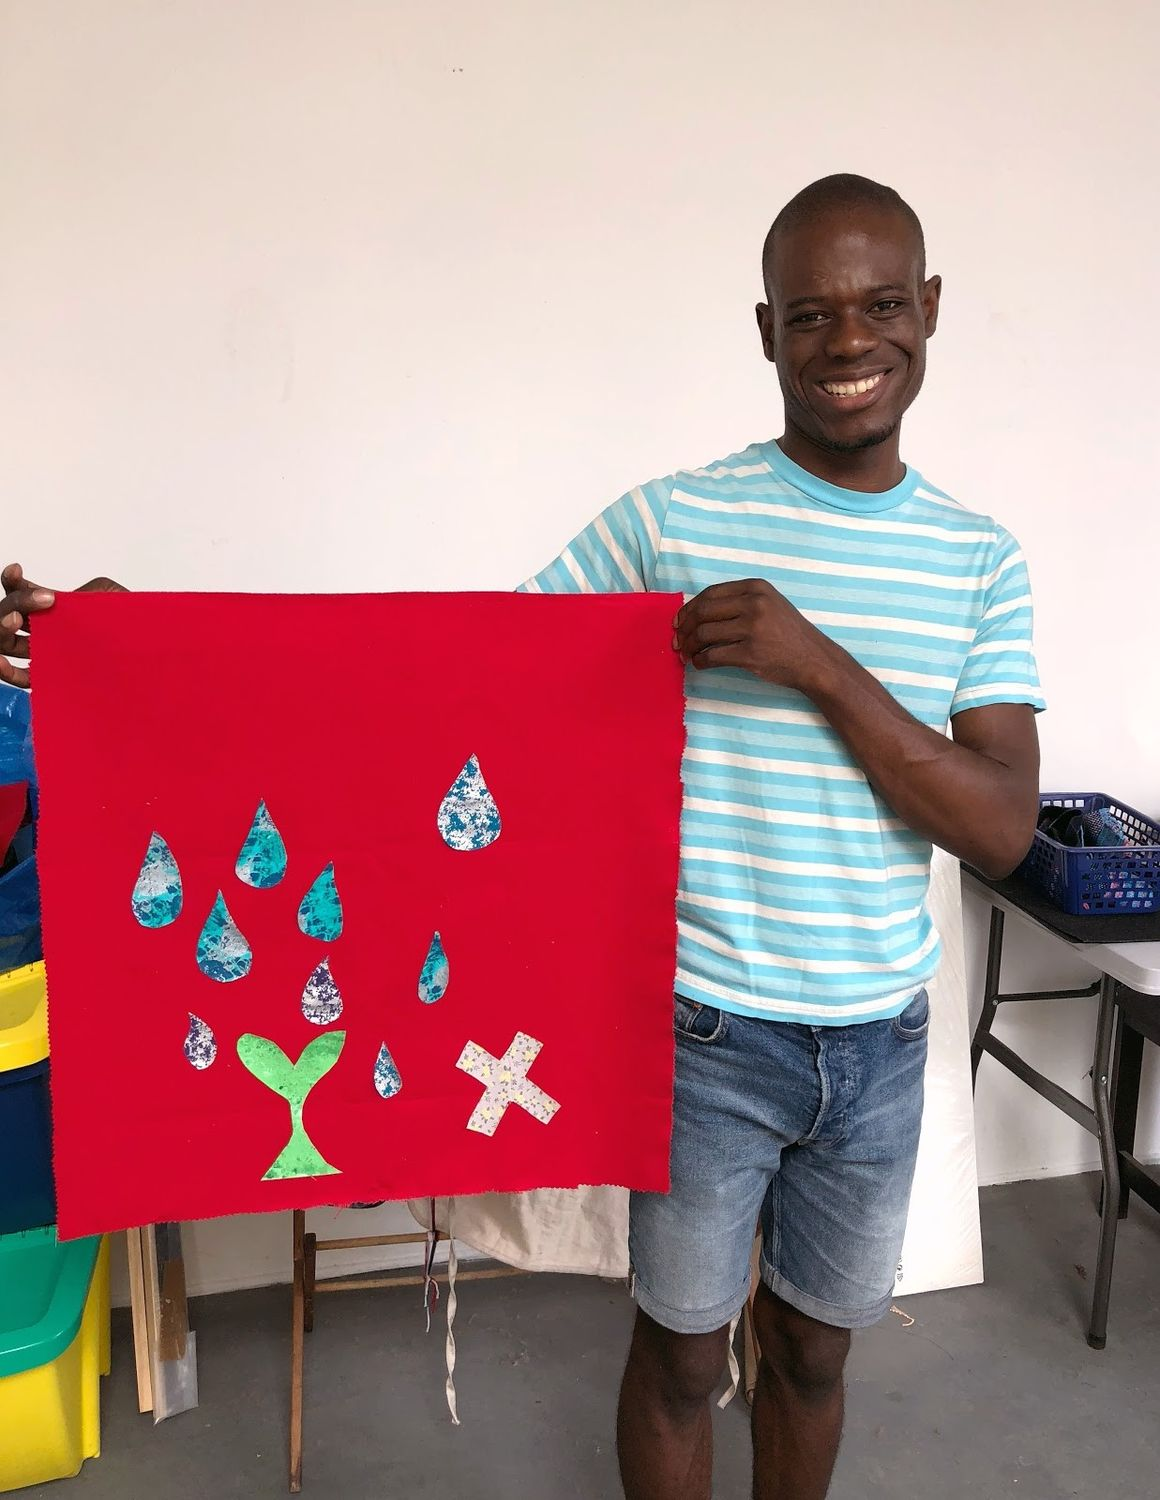 Diedrick with his completed Family Day project test